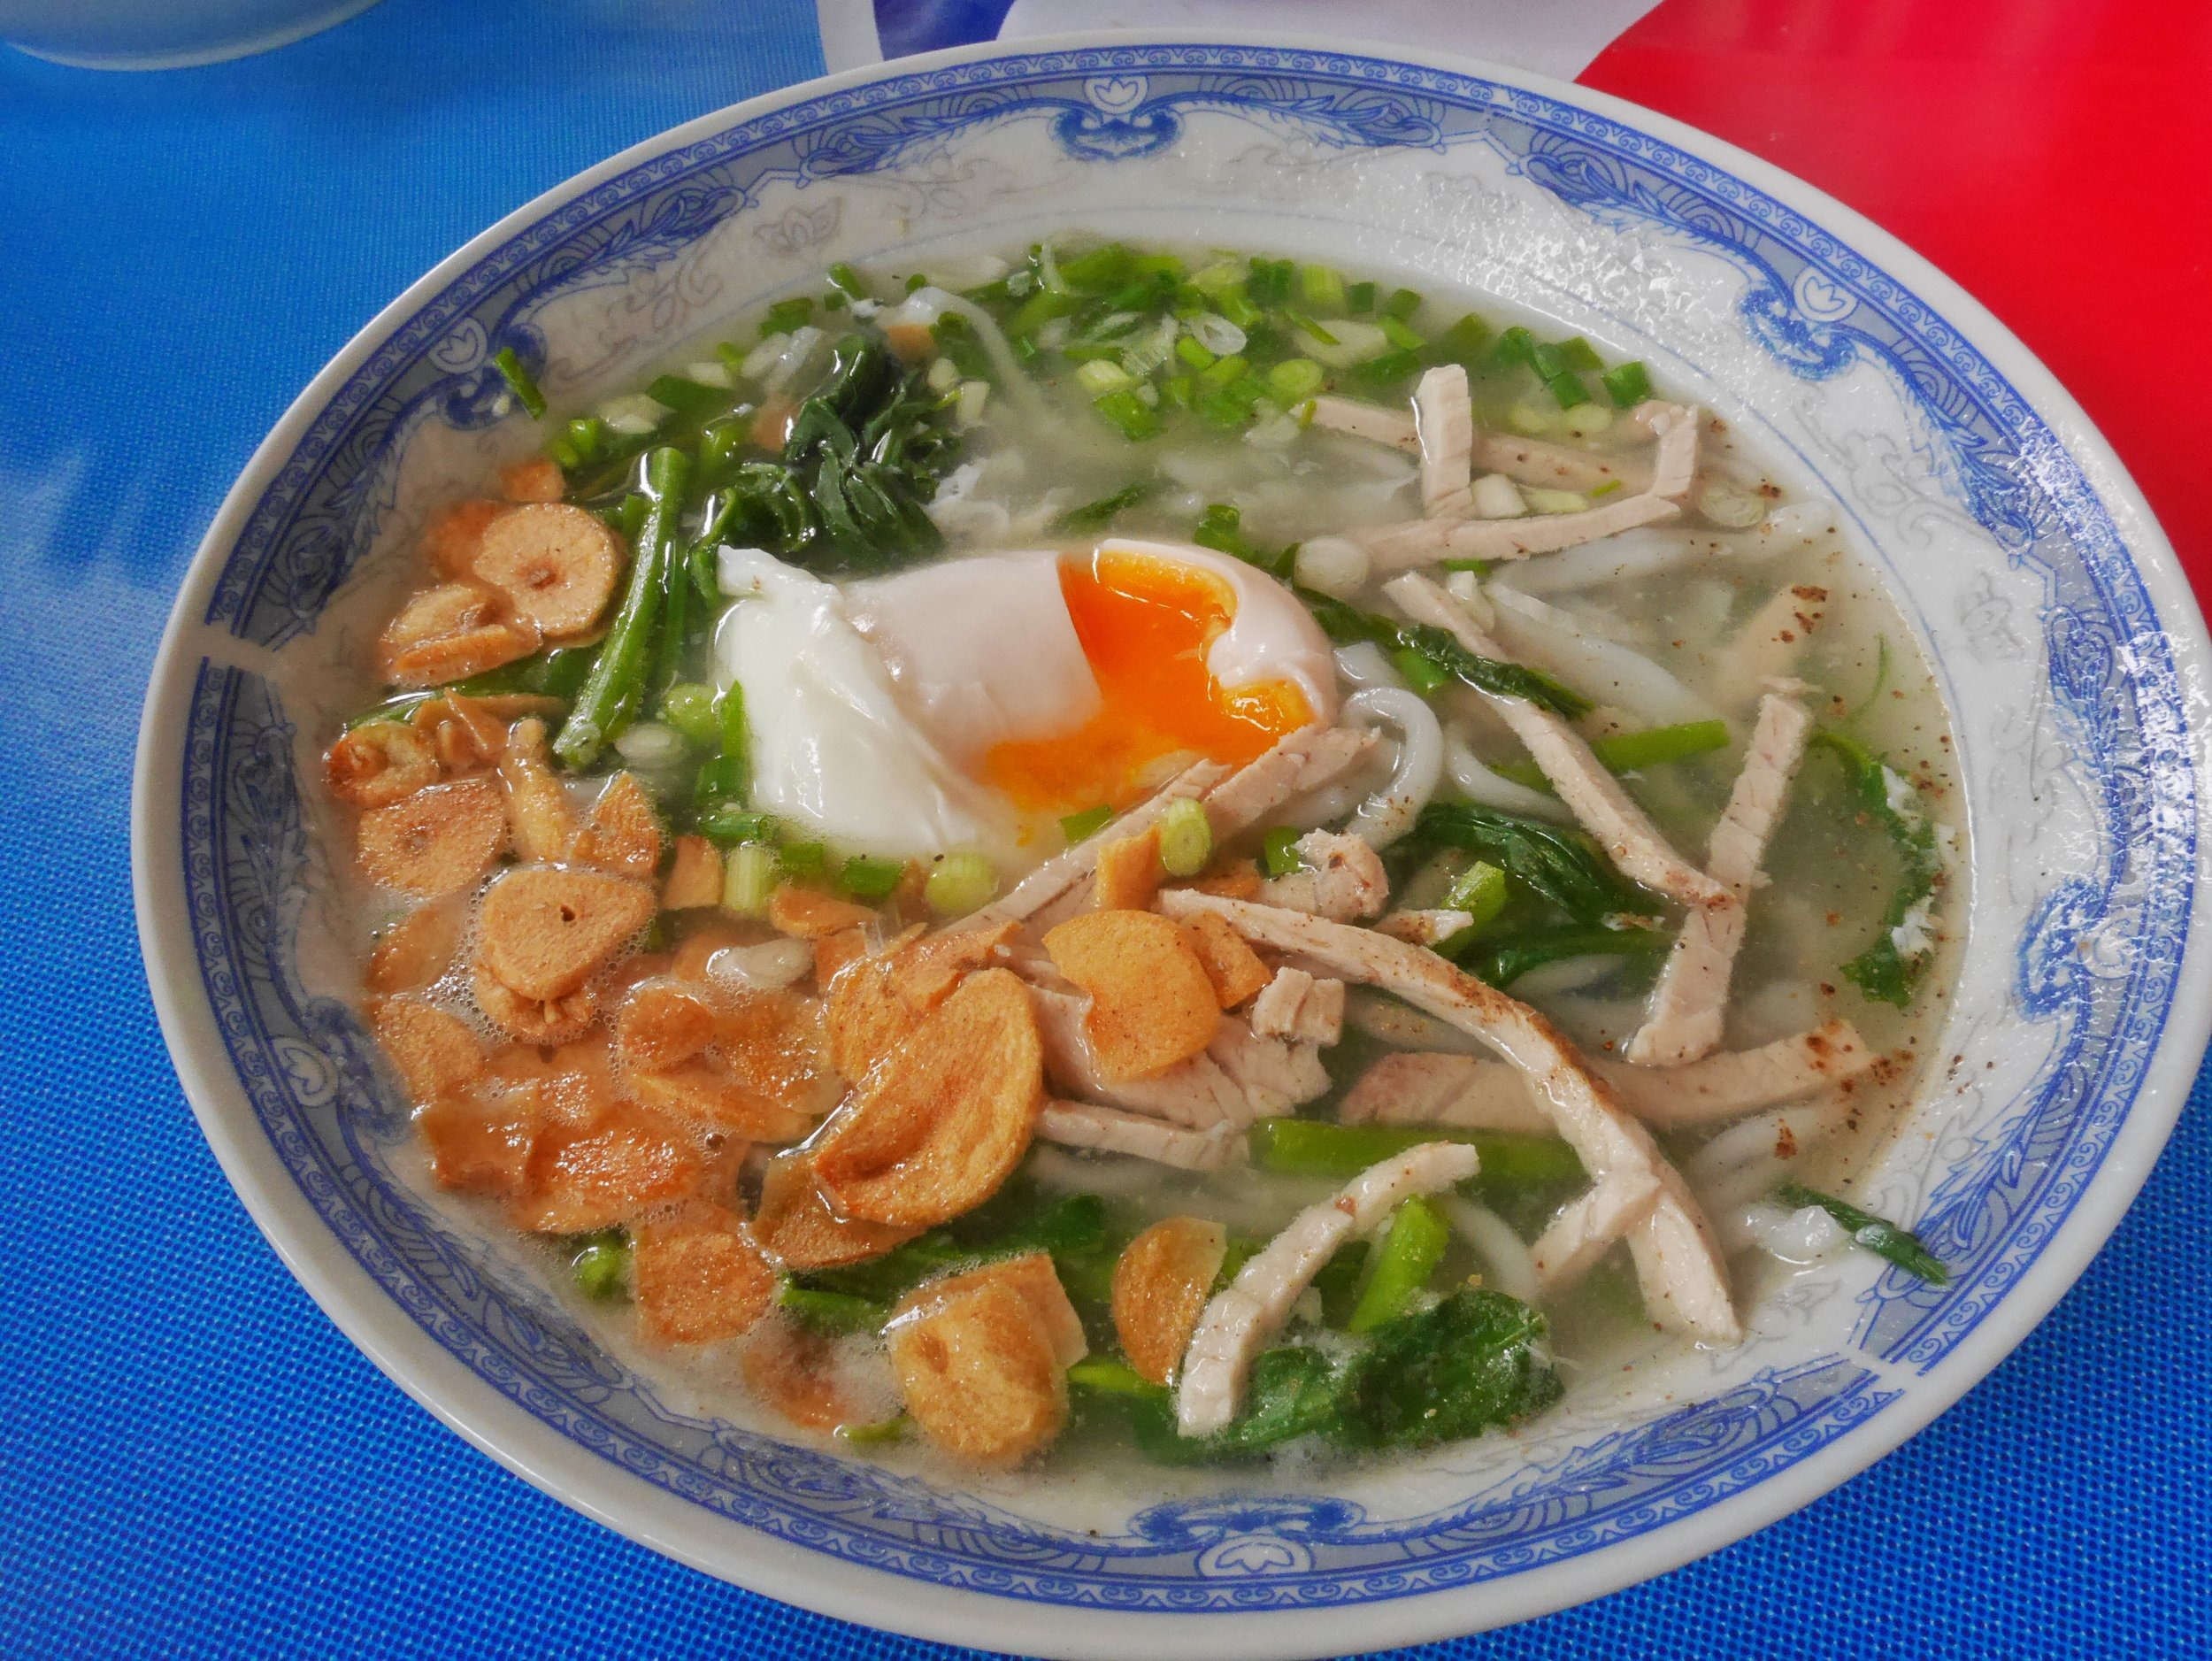 Delicious noodle in Luang Prabang